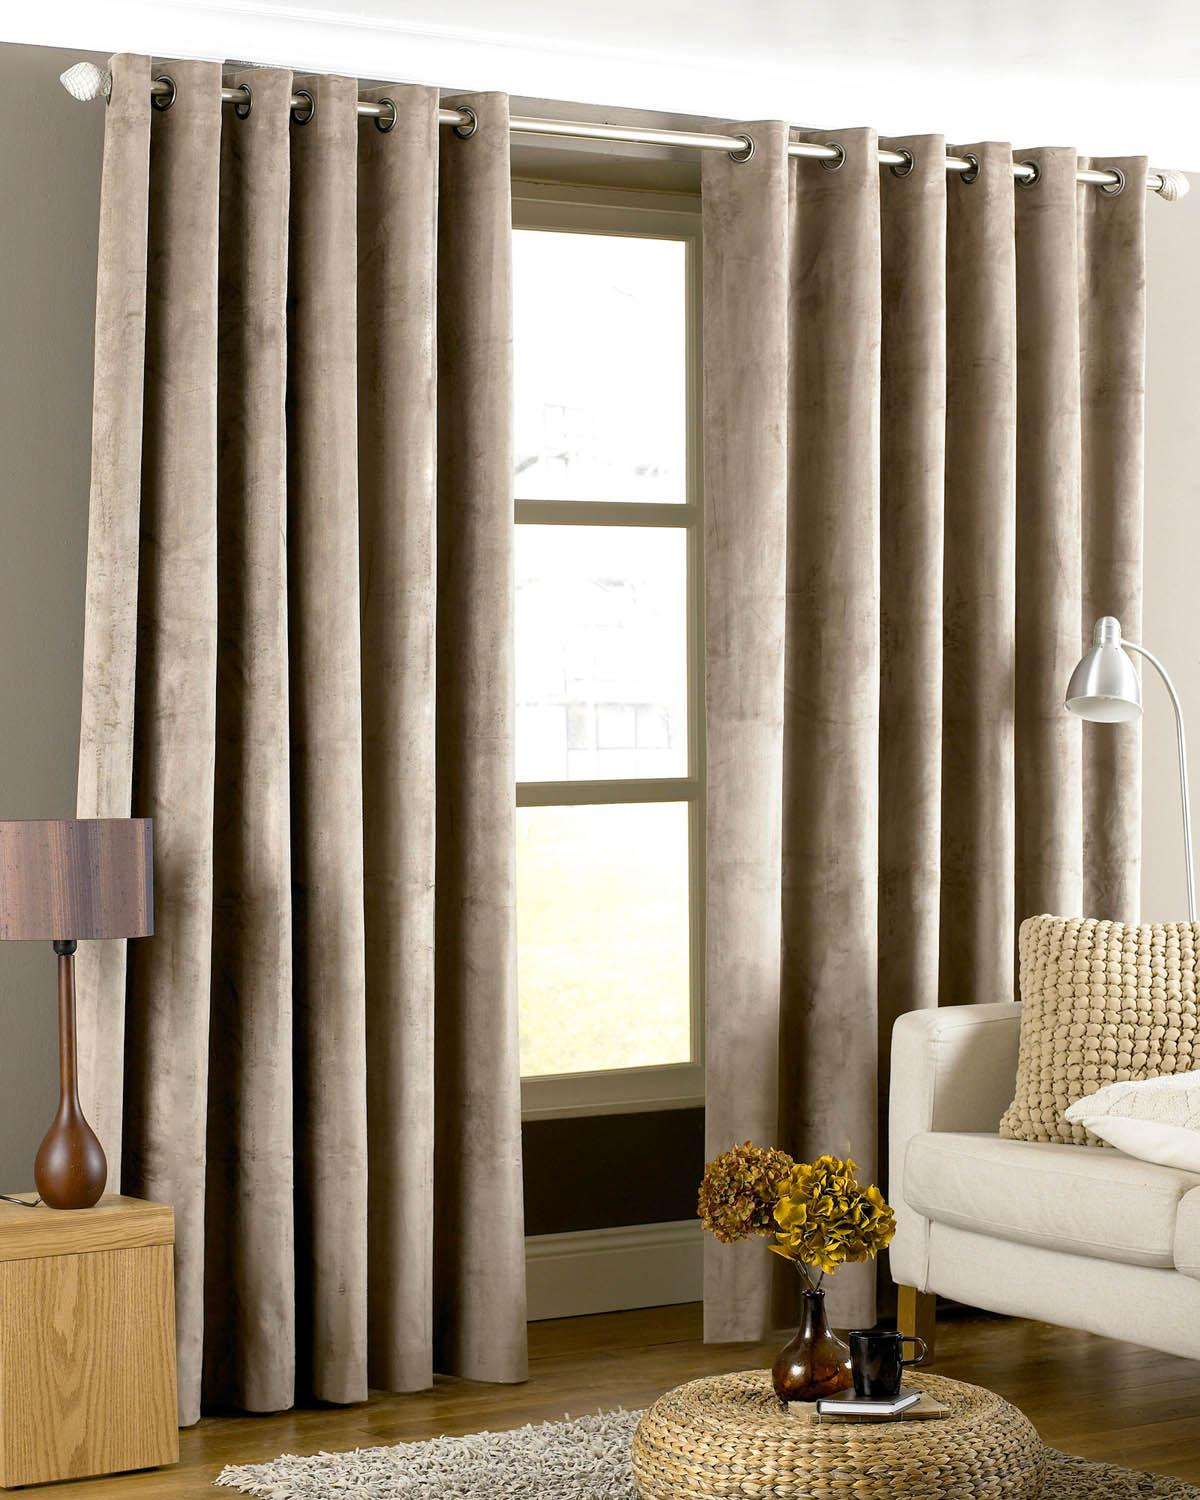 Stockists of Taupe Emperor Ready Made Faux Suede Lined Eyelet Curtains